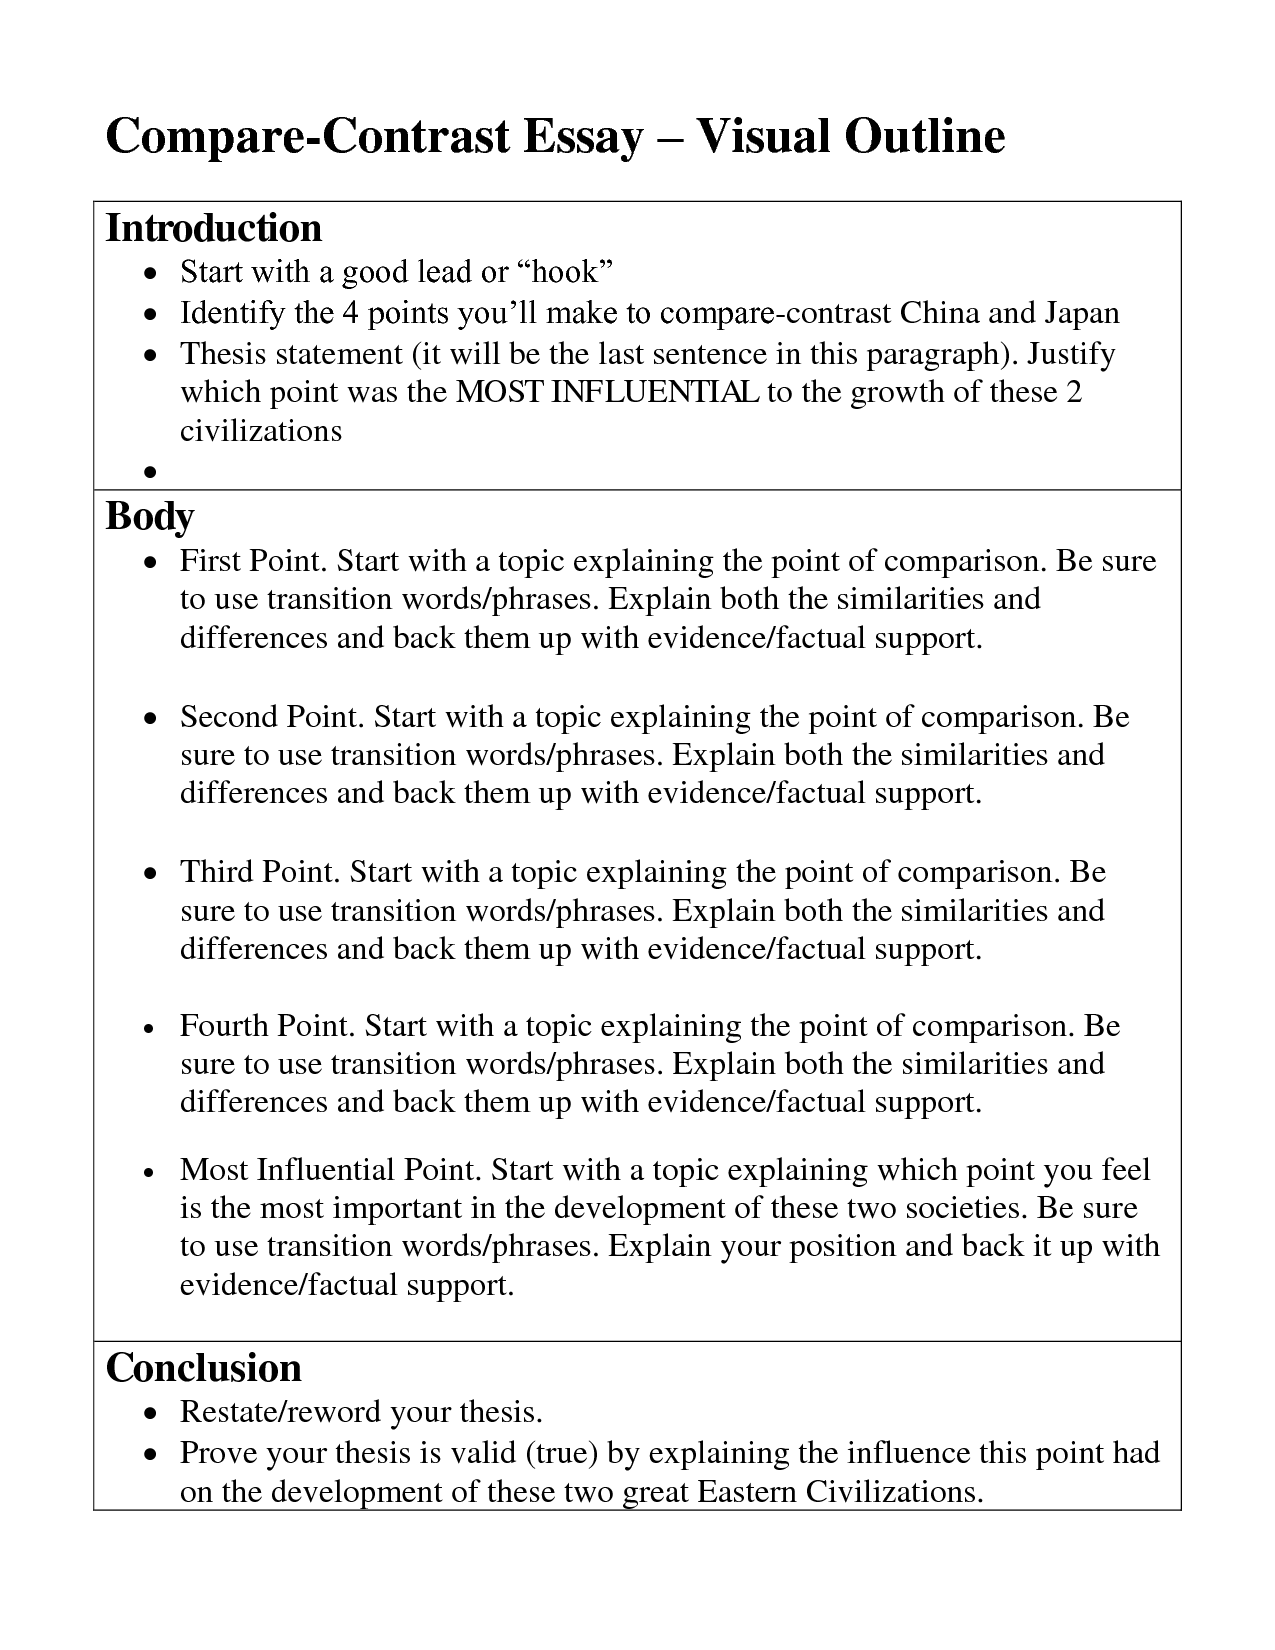 005 How To Start Research Paper Frightening Paragraph Your First Body In A Conclusion Full